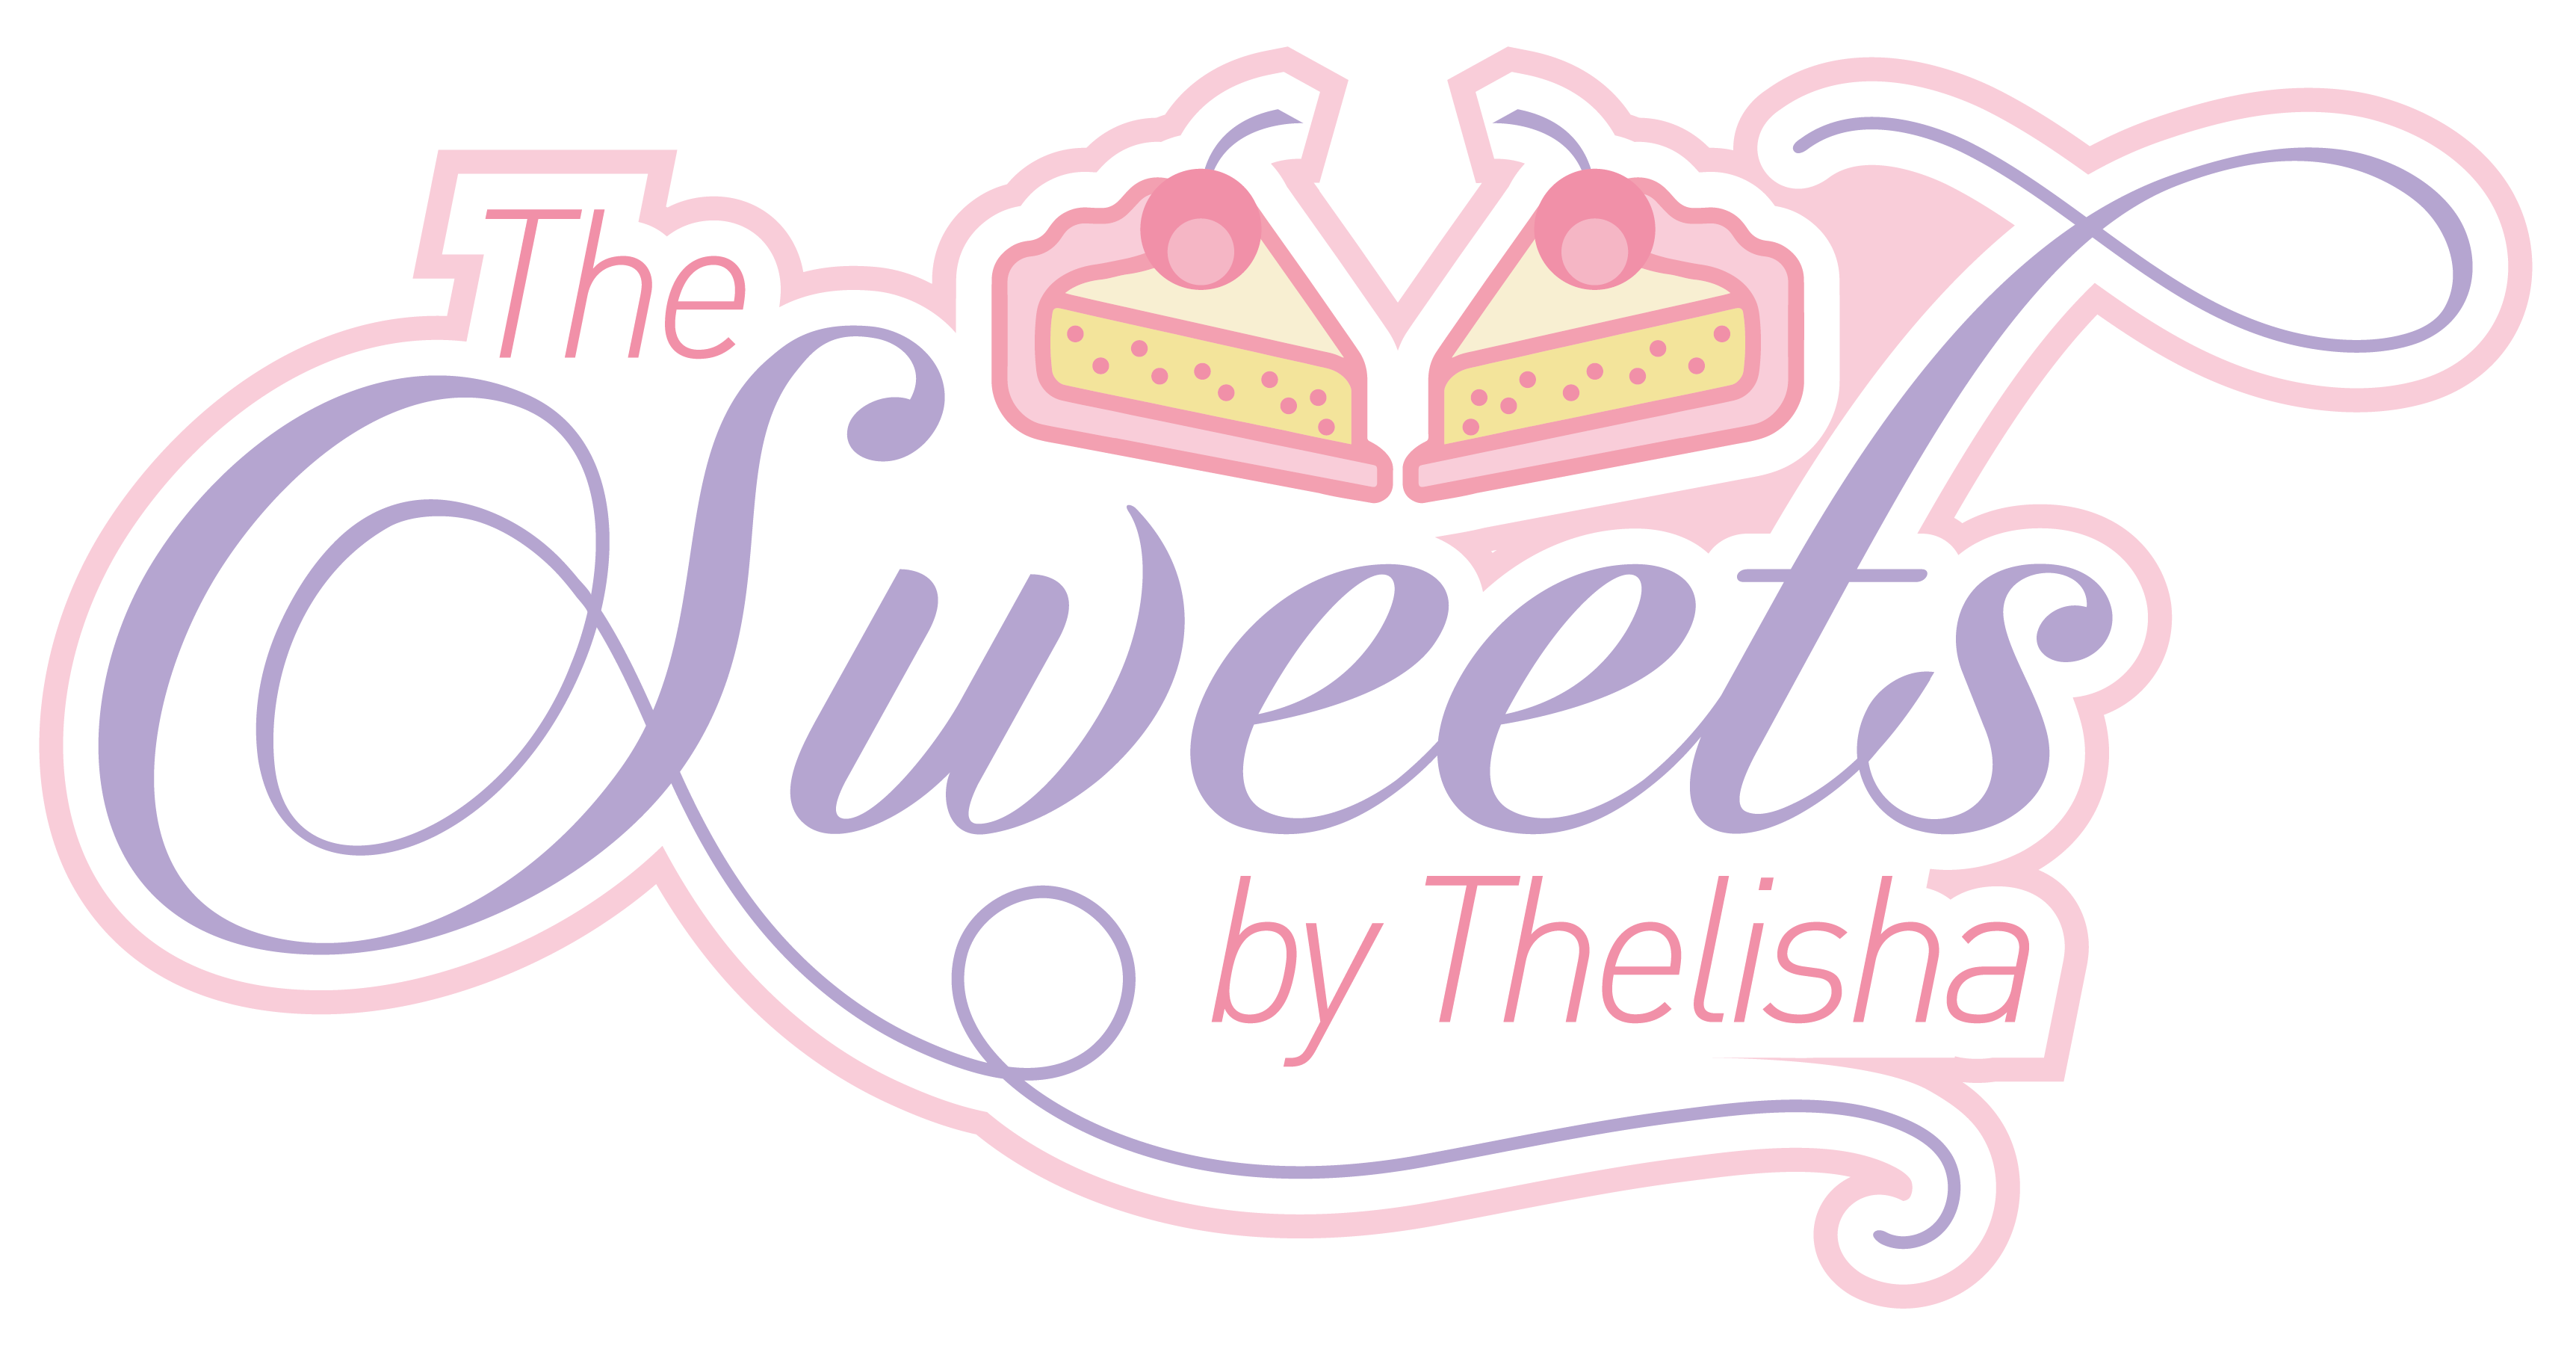 The Sweets by Thelisha